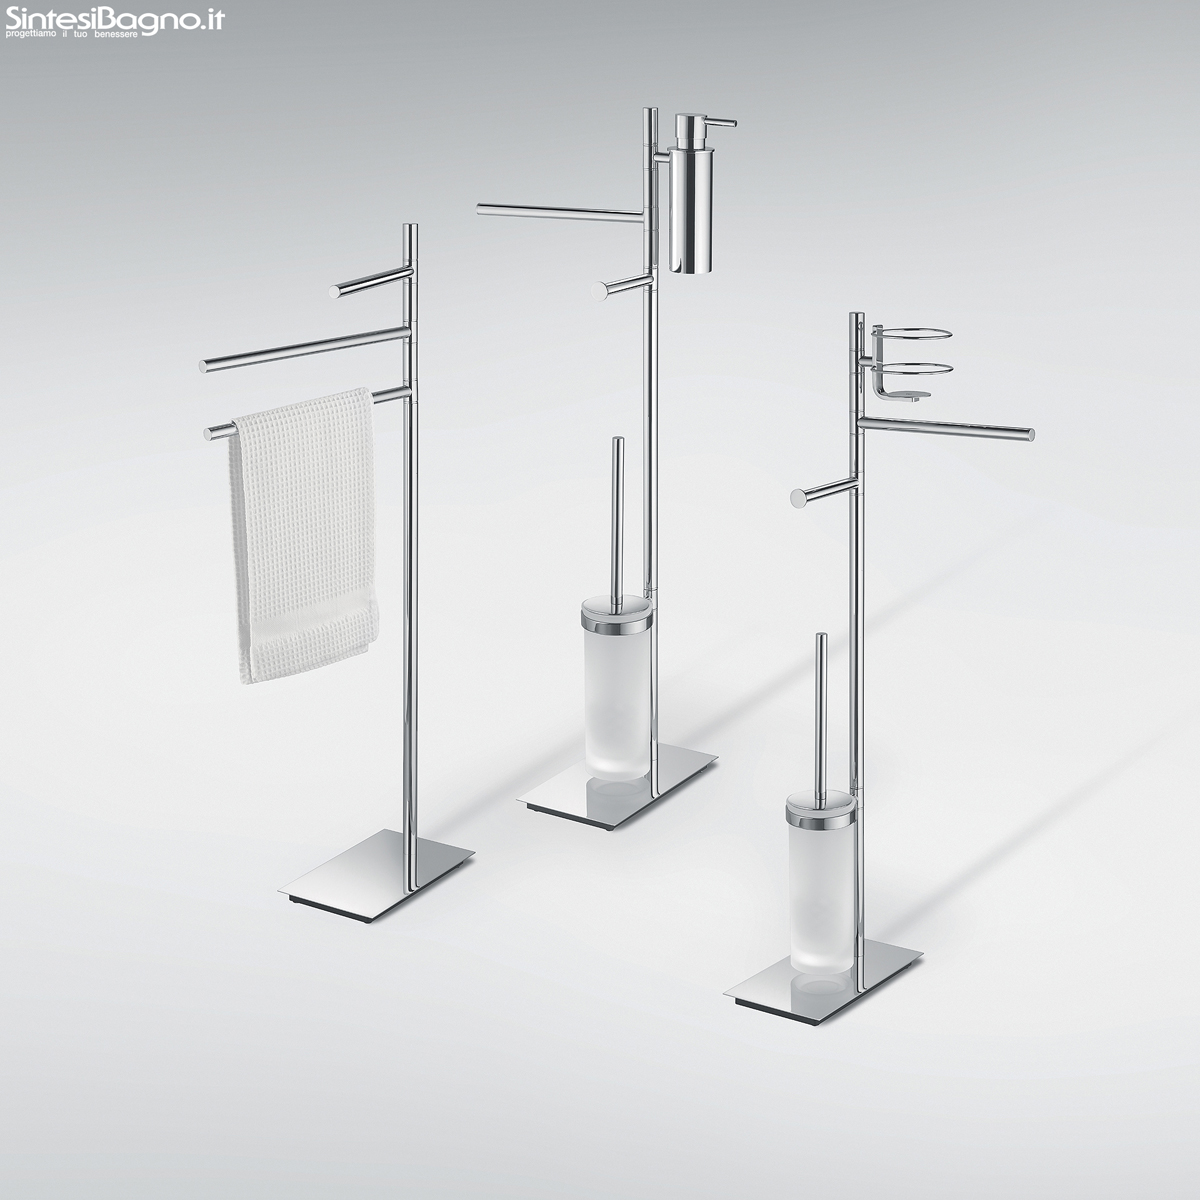 Piantane e colonne serie square di colombo design - Colombo accessori bagno ...